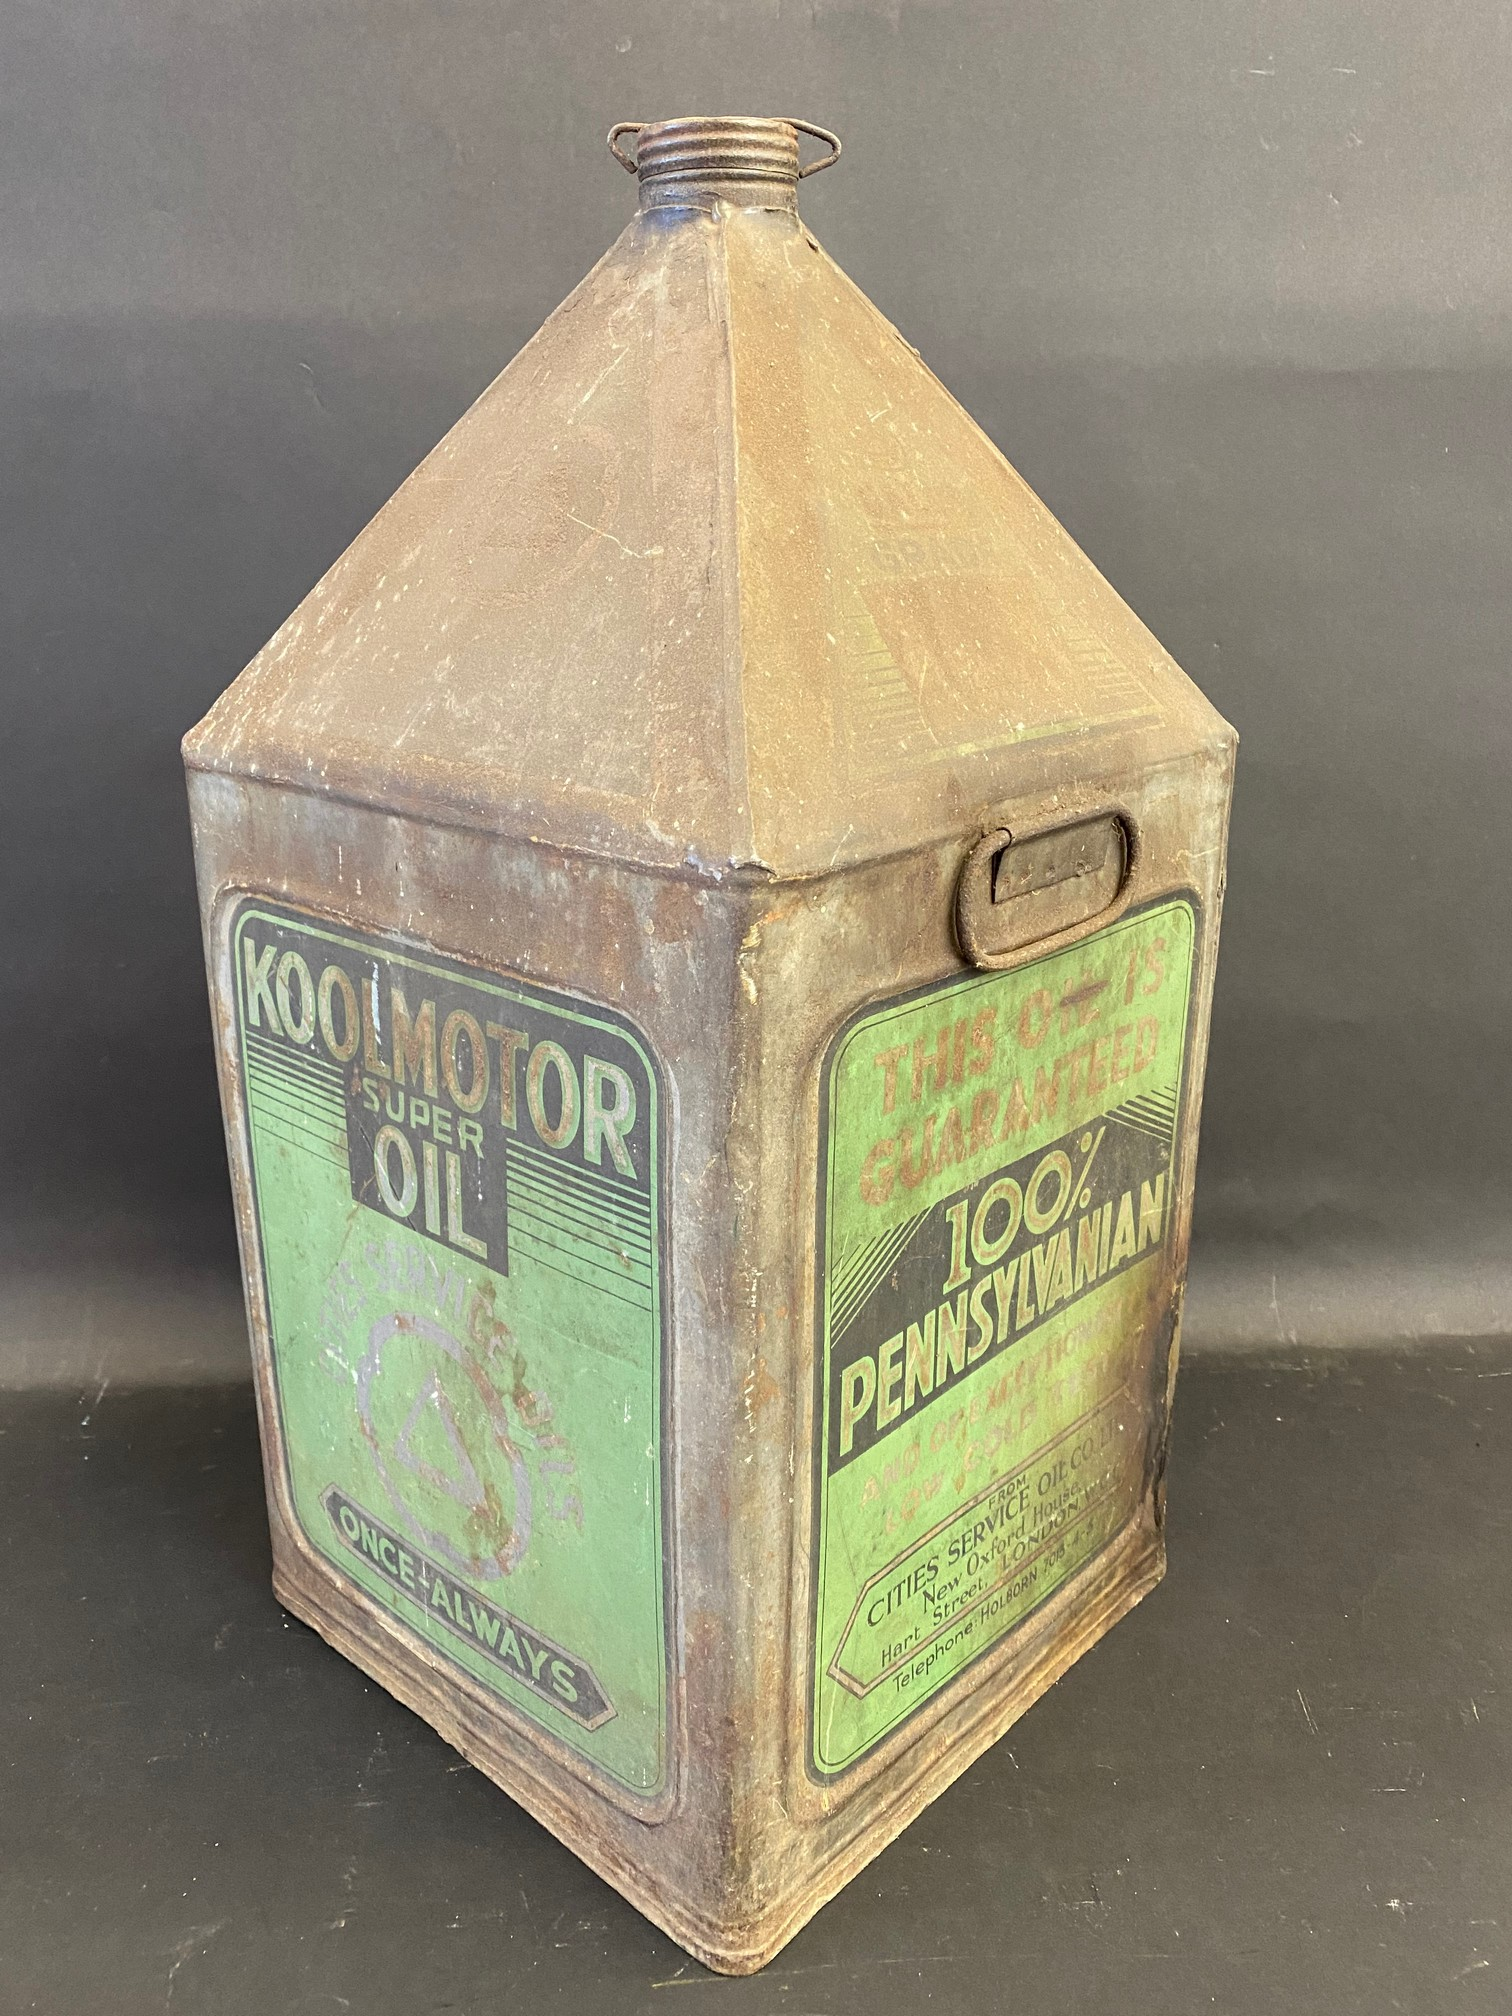 A Koolmotor Super Oil five gallon pyramid can, an unusual UK supplier from Pensylvanian oil. - Image 2 of 4